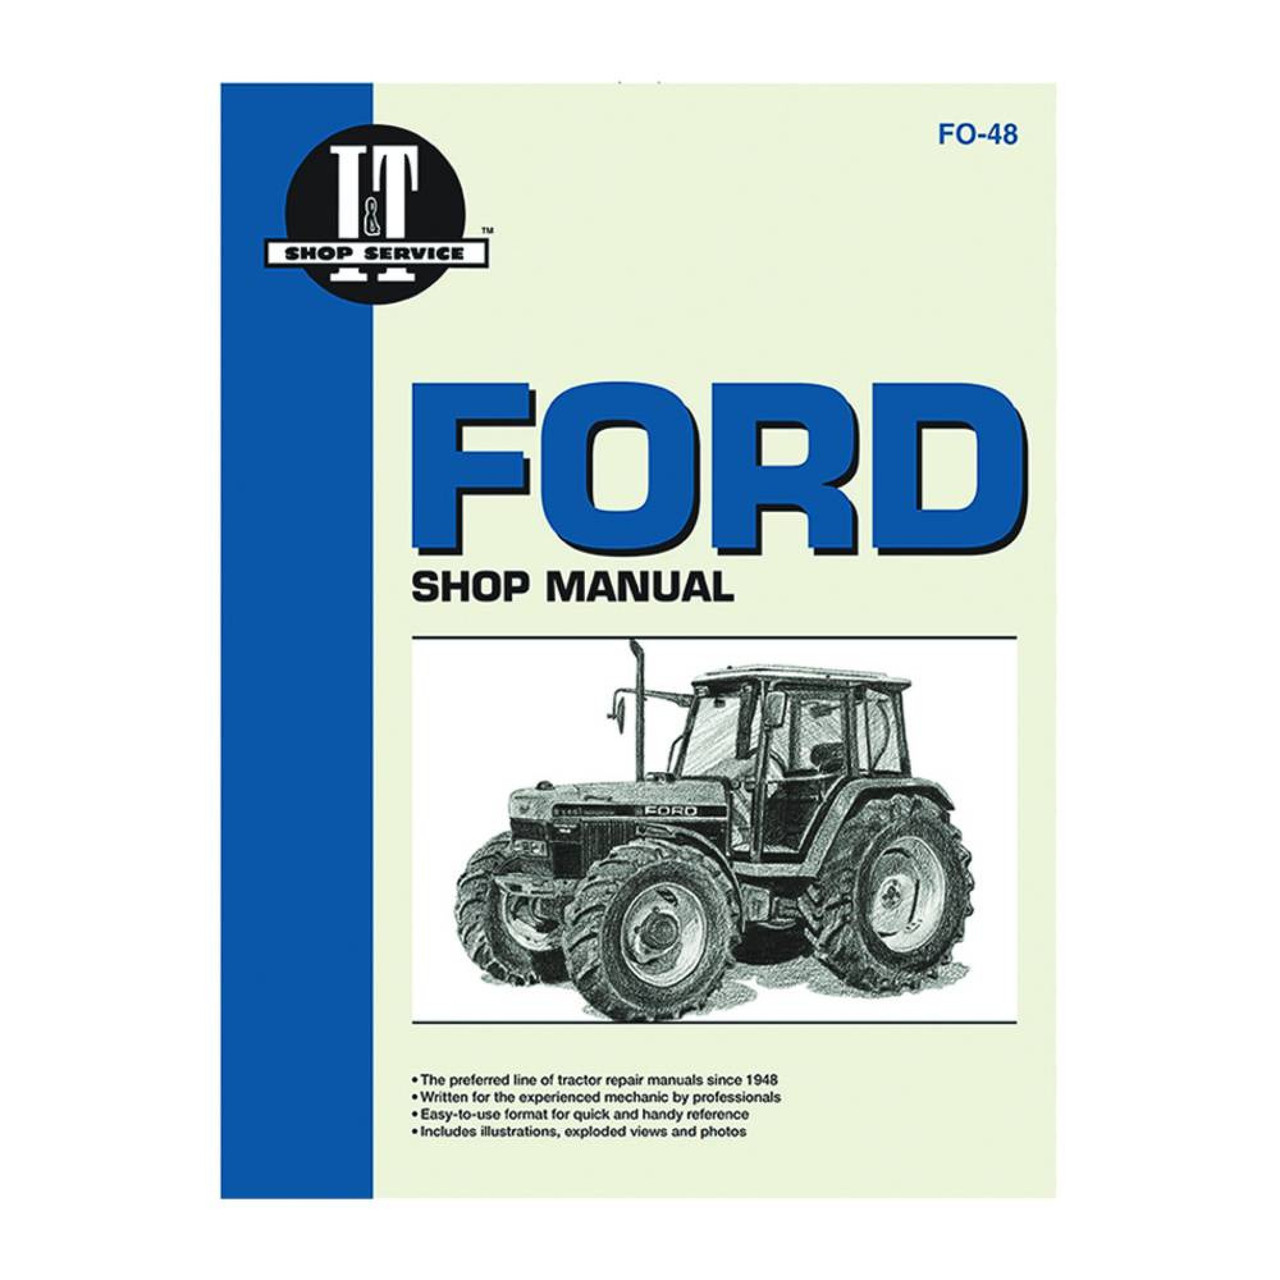 Ford Tractor Wiring Harness 7740 - Wiring Diagram Bookmark on